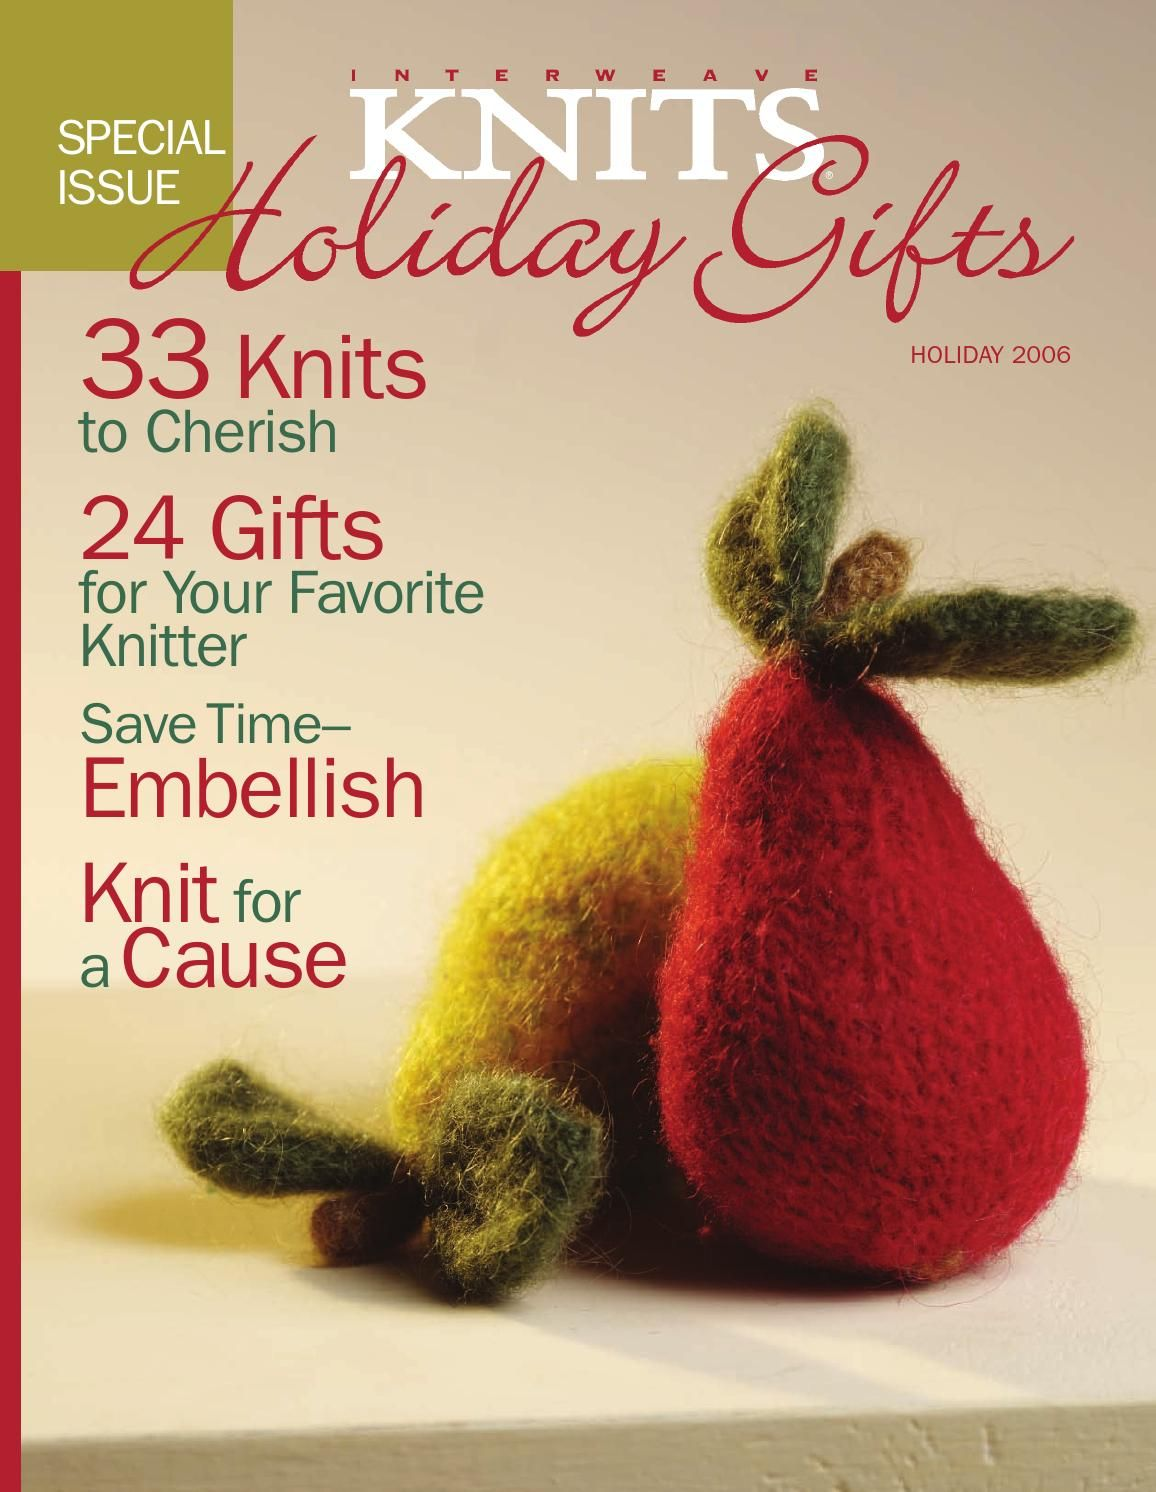 Kn gifts 2006  knitting accassories